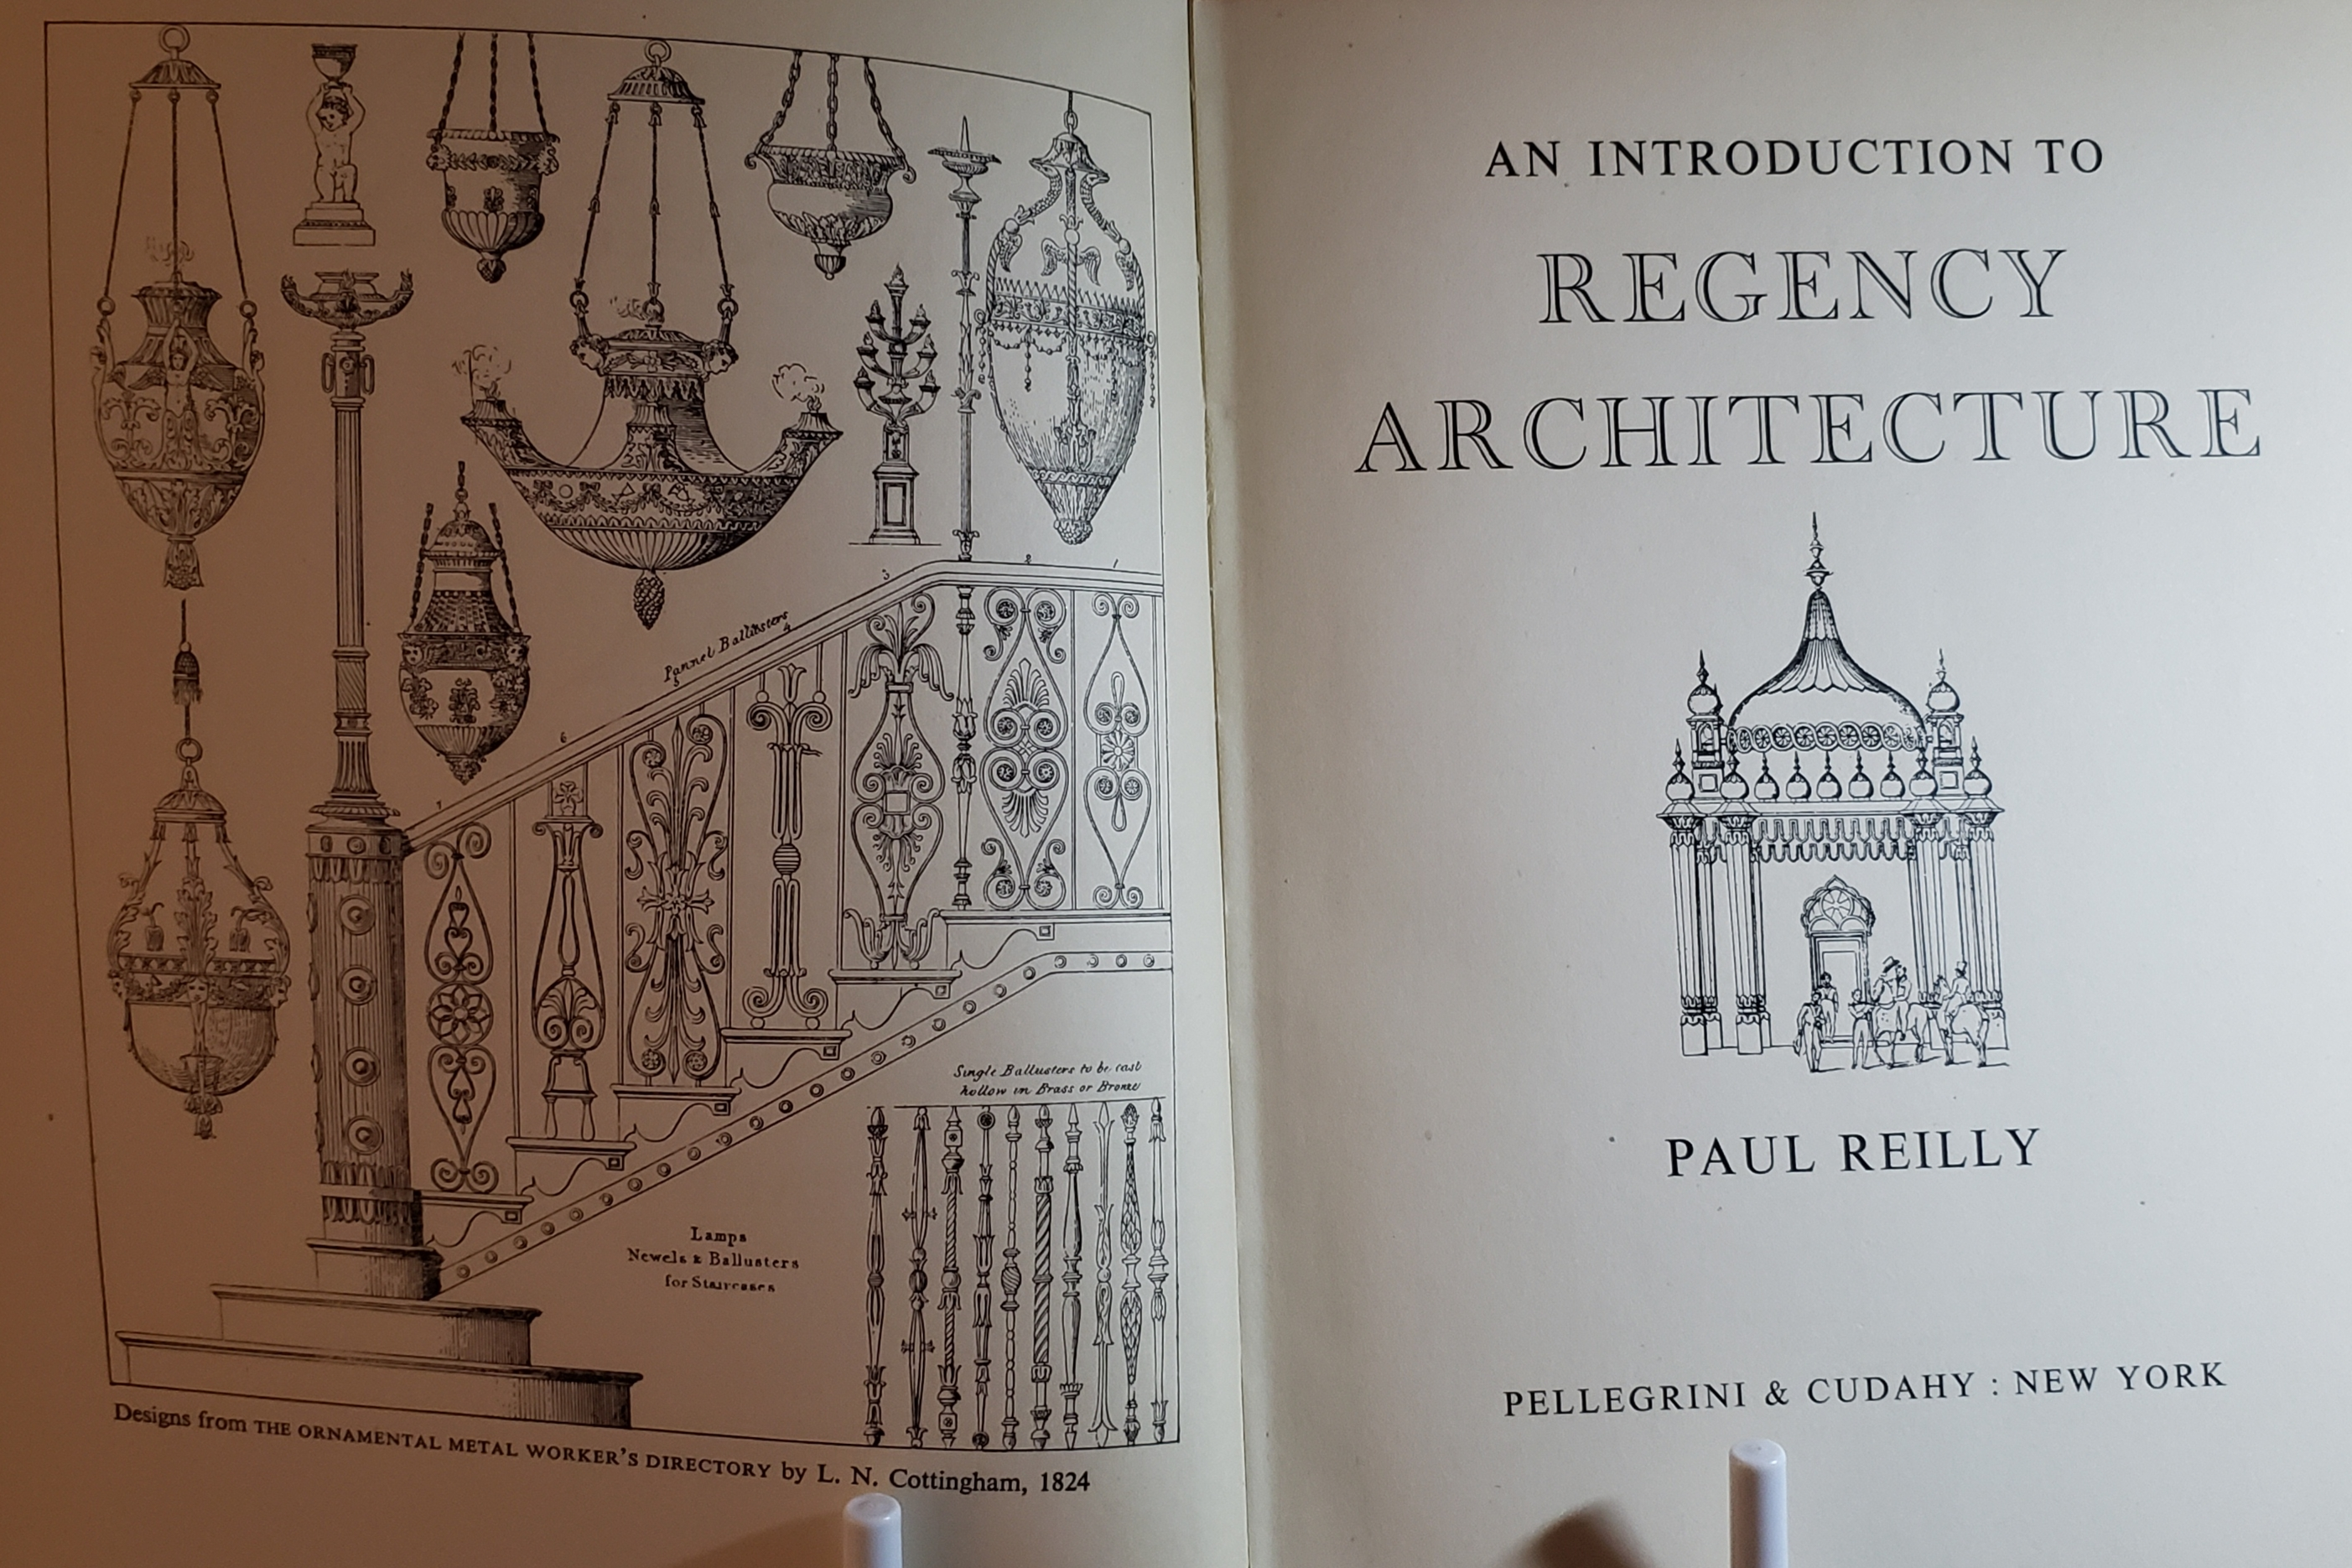 Image of the title page of An Introduction to Regency Architecture